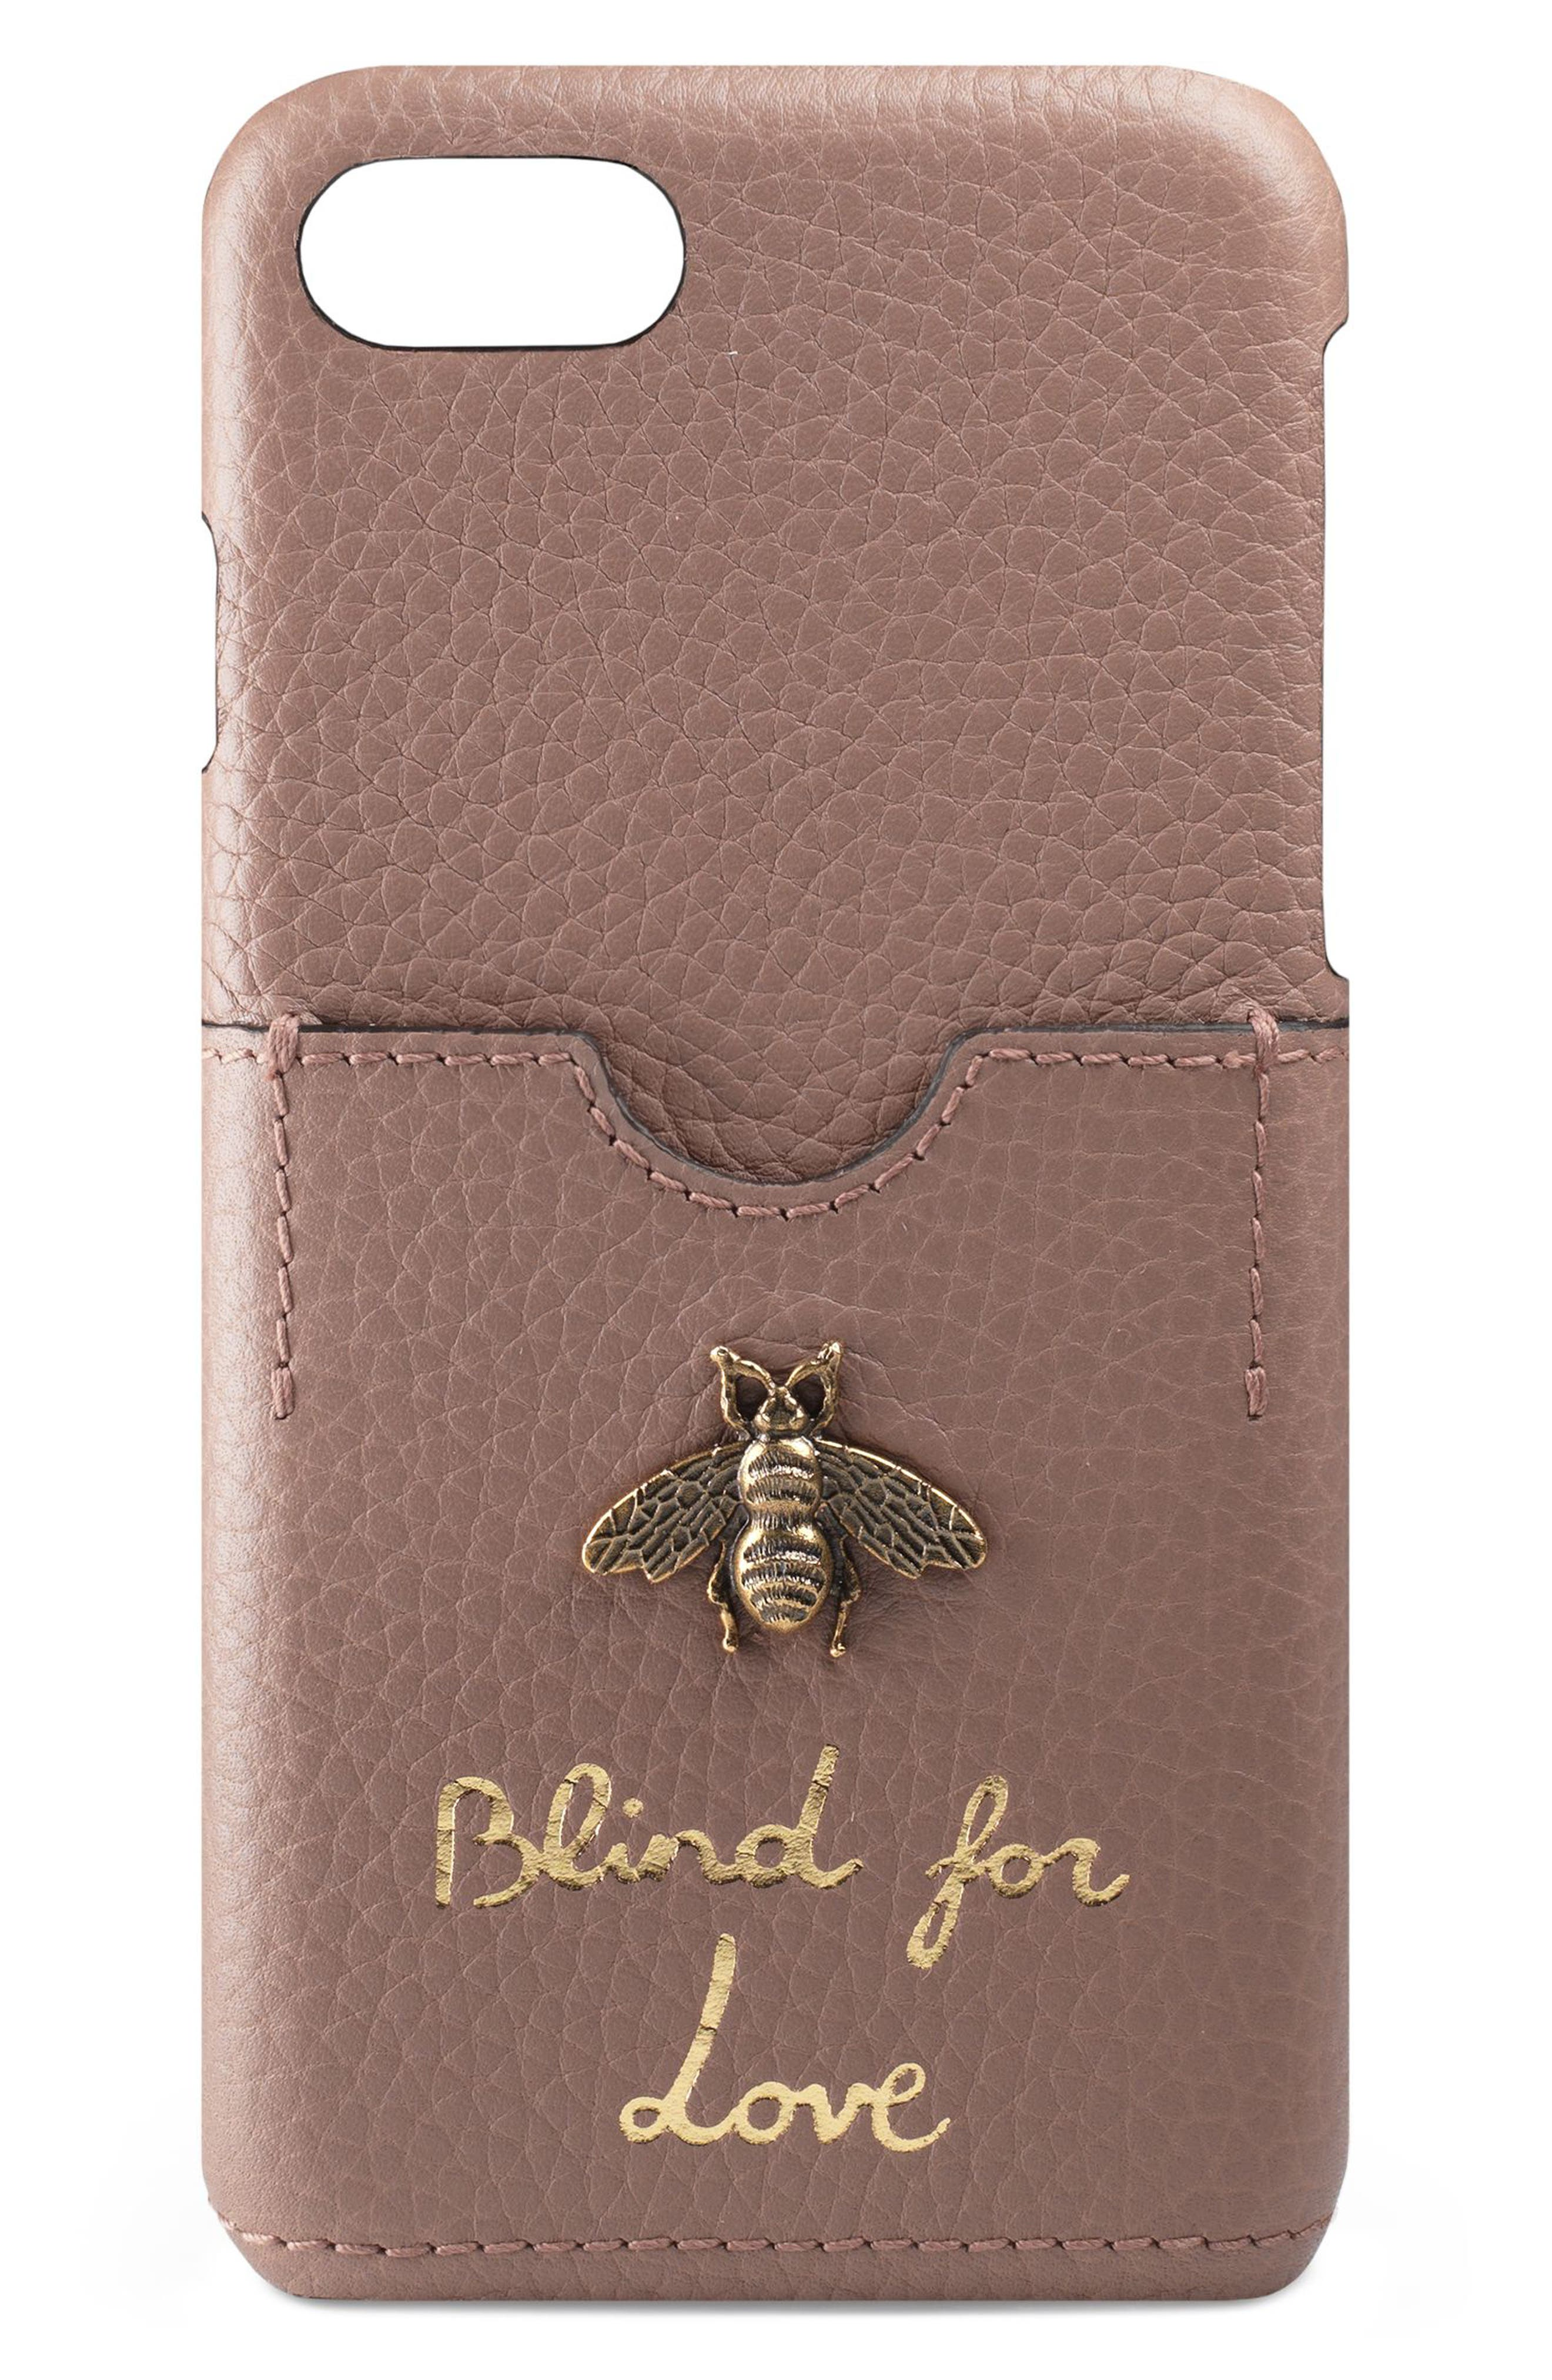 Gucci Animalier Bee Leather iPhone 7 Case